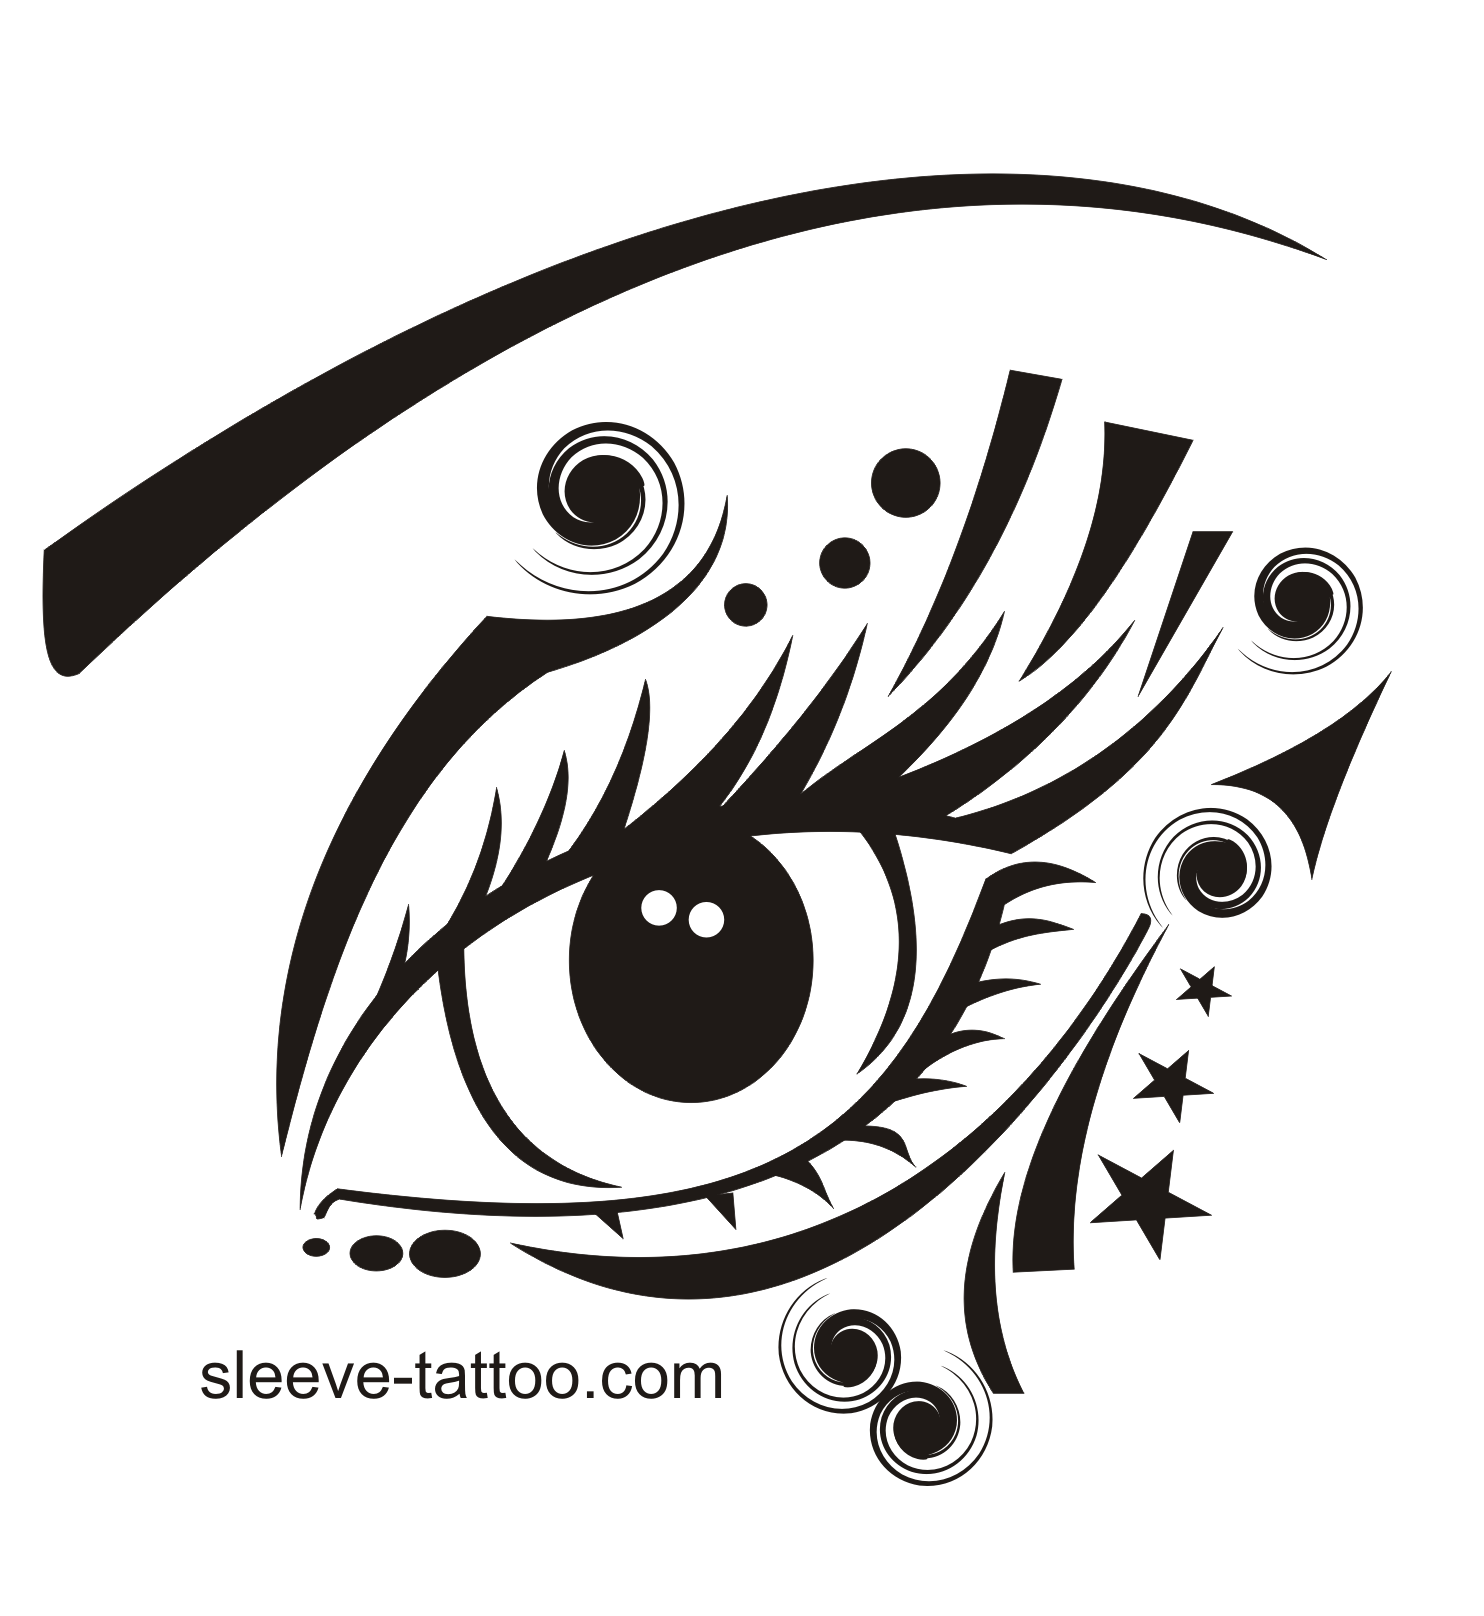 Simple skull tattoo designs - Awesome Tribal Tattoo History And Symbolism Cute Tattoo Design Simple Skull